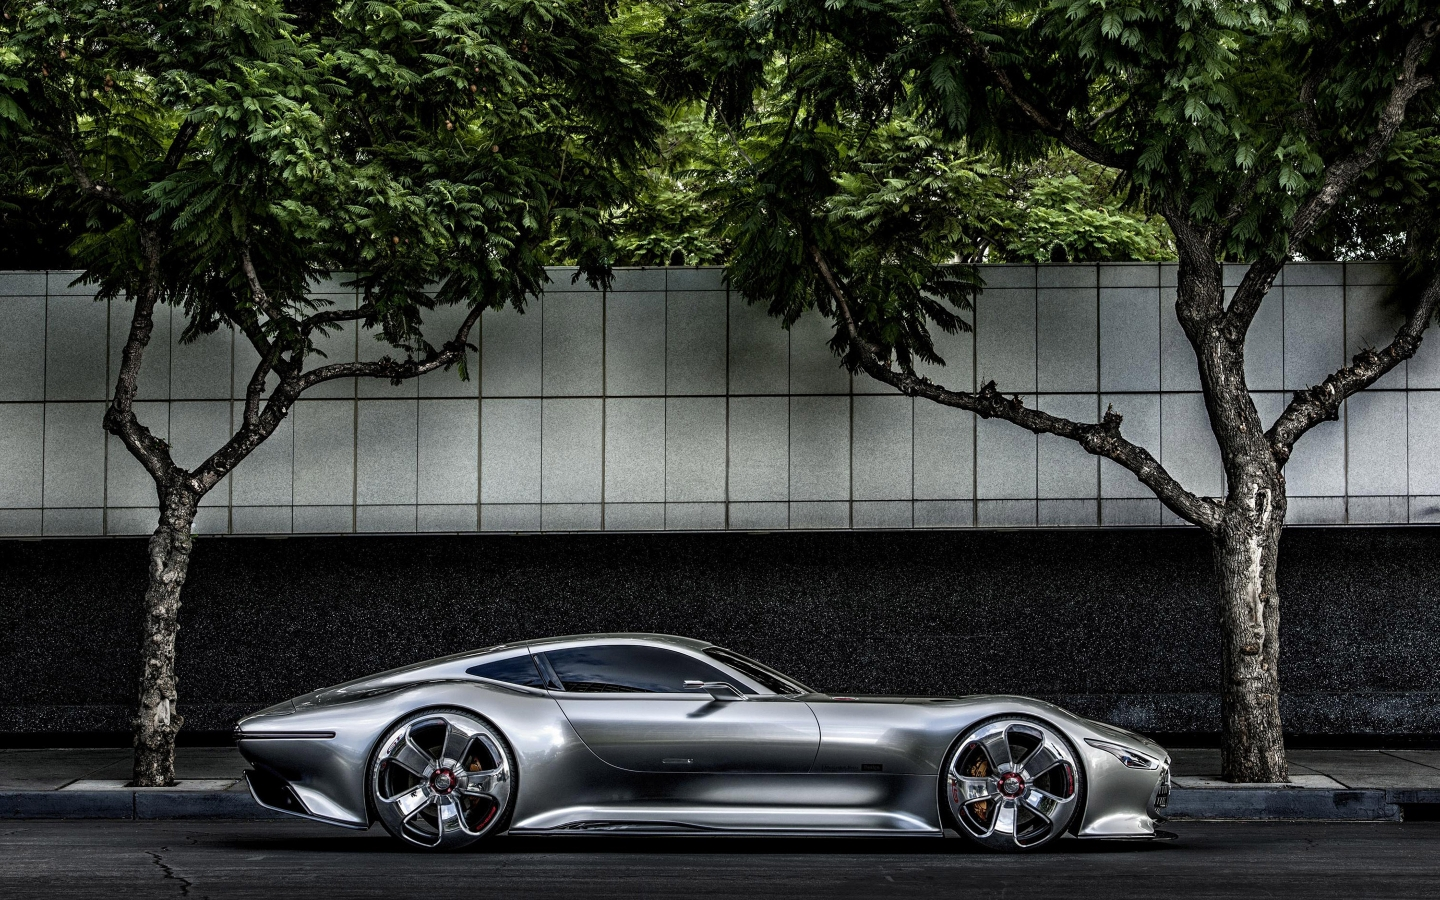 Mercedes AMG Vision GT Side for 1440 x 900 widescreen resolution